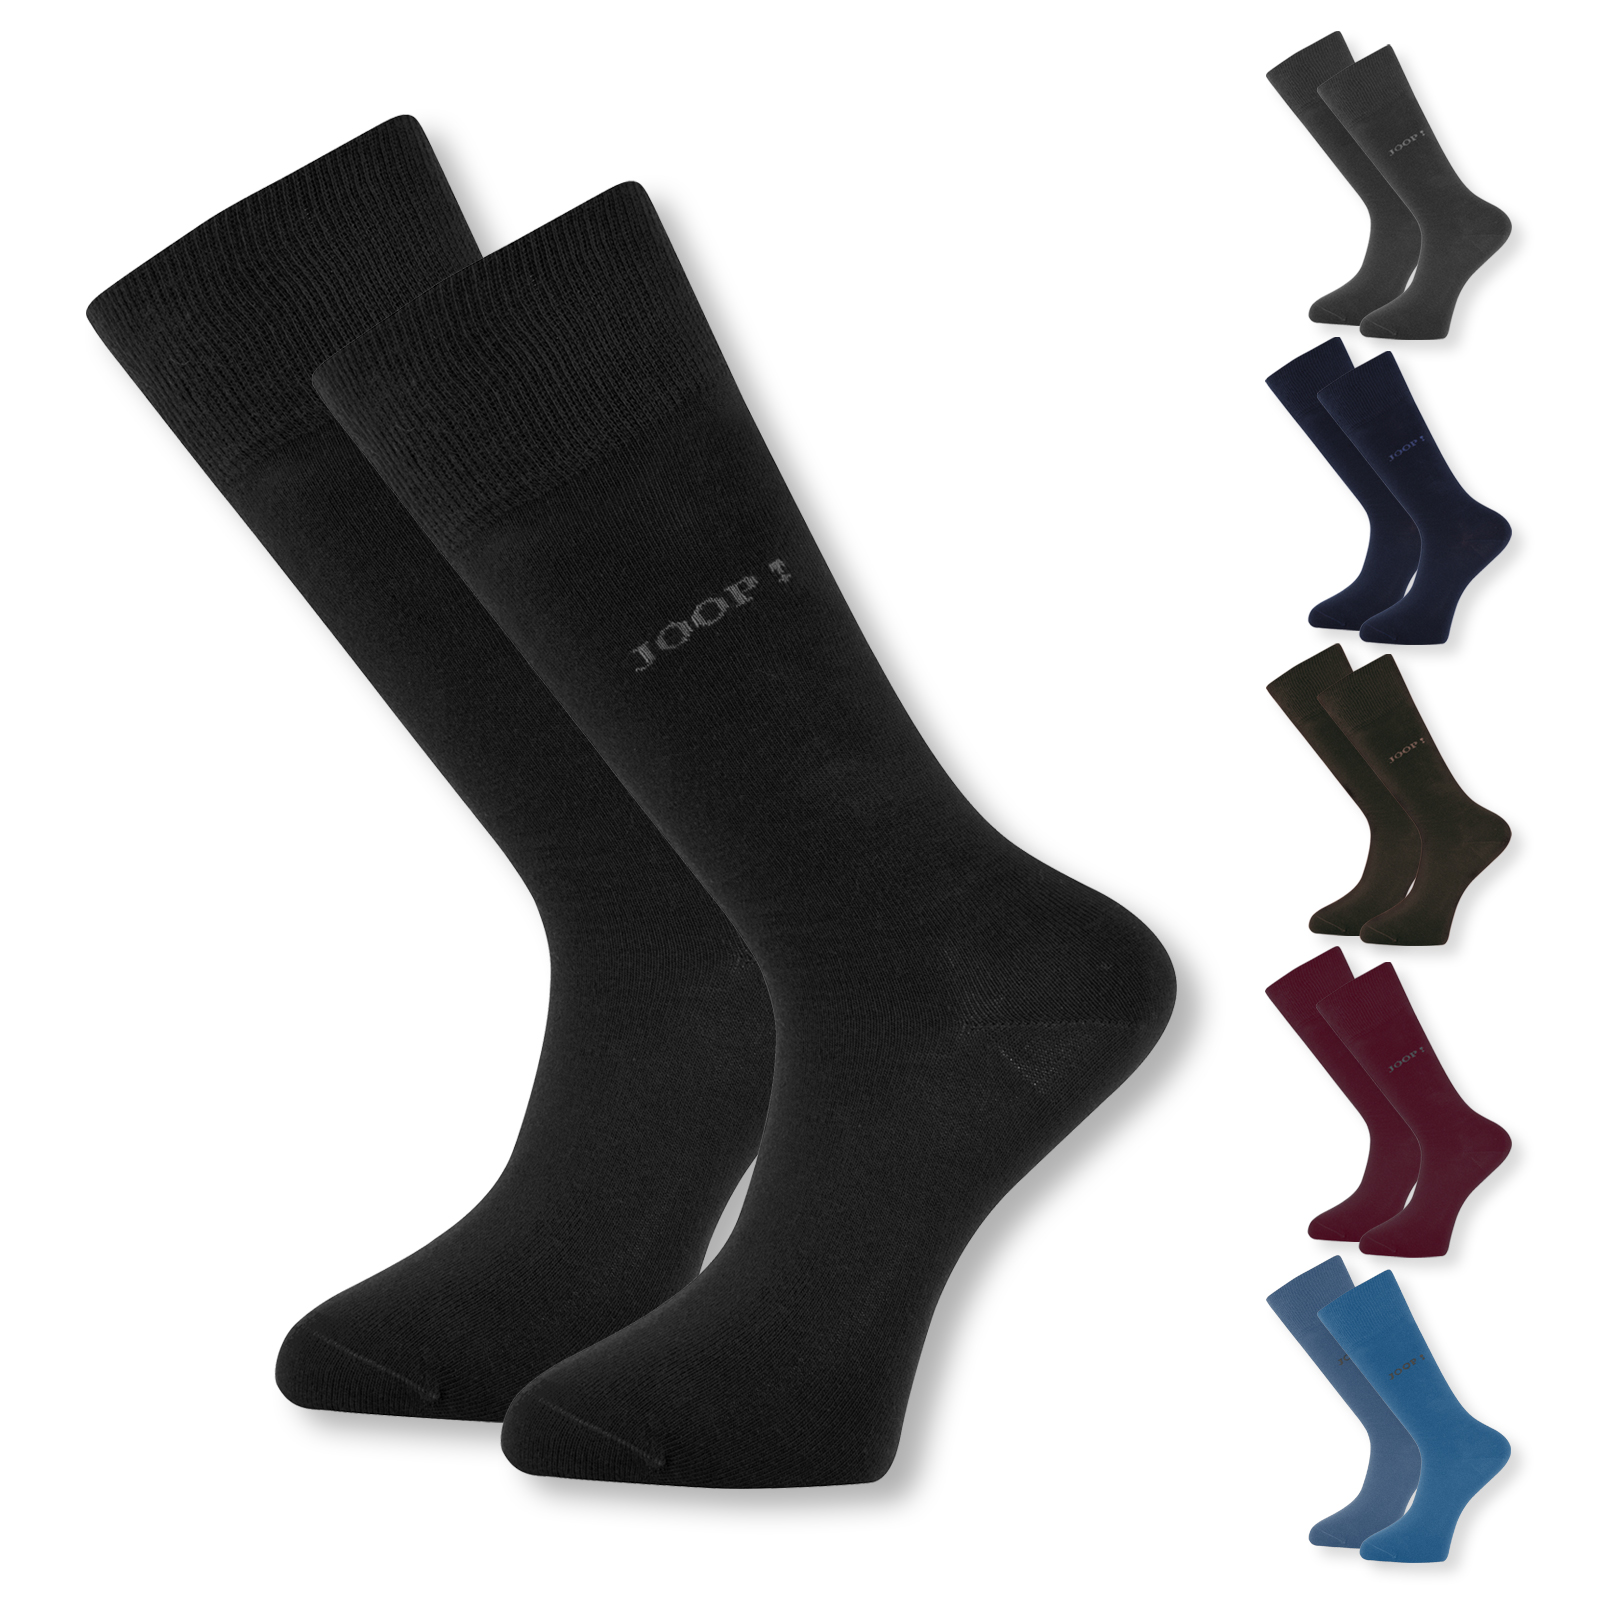 4, 8, 12 Paar Joop! Herren Socken 39/42 - 43/46 in polar lights